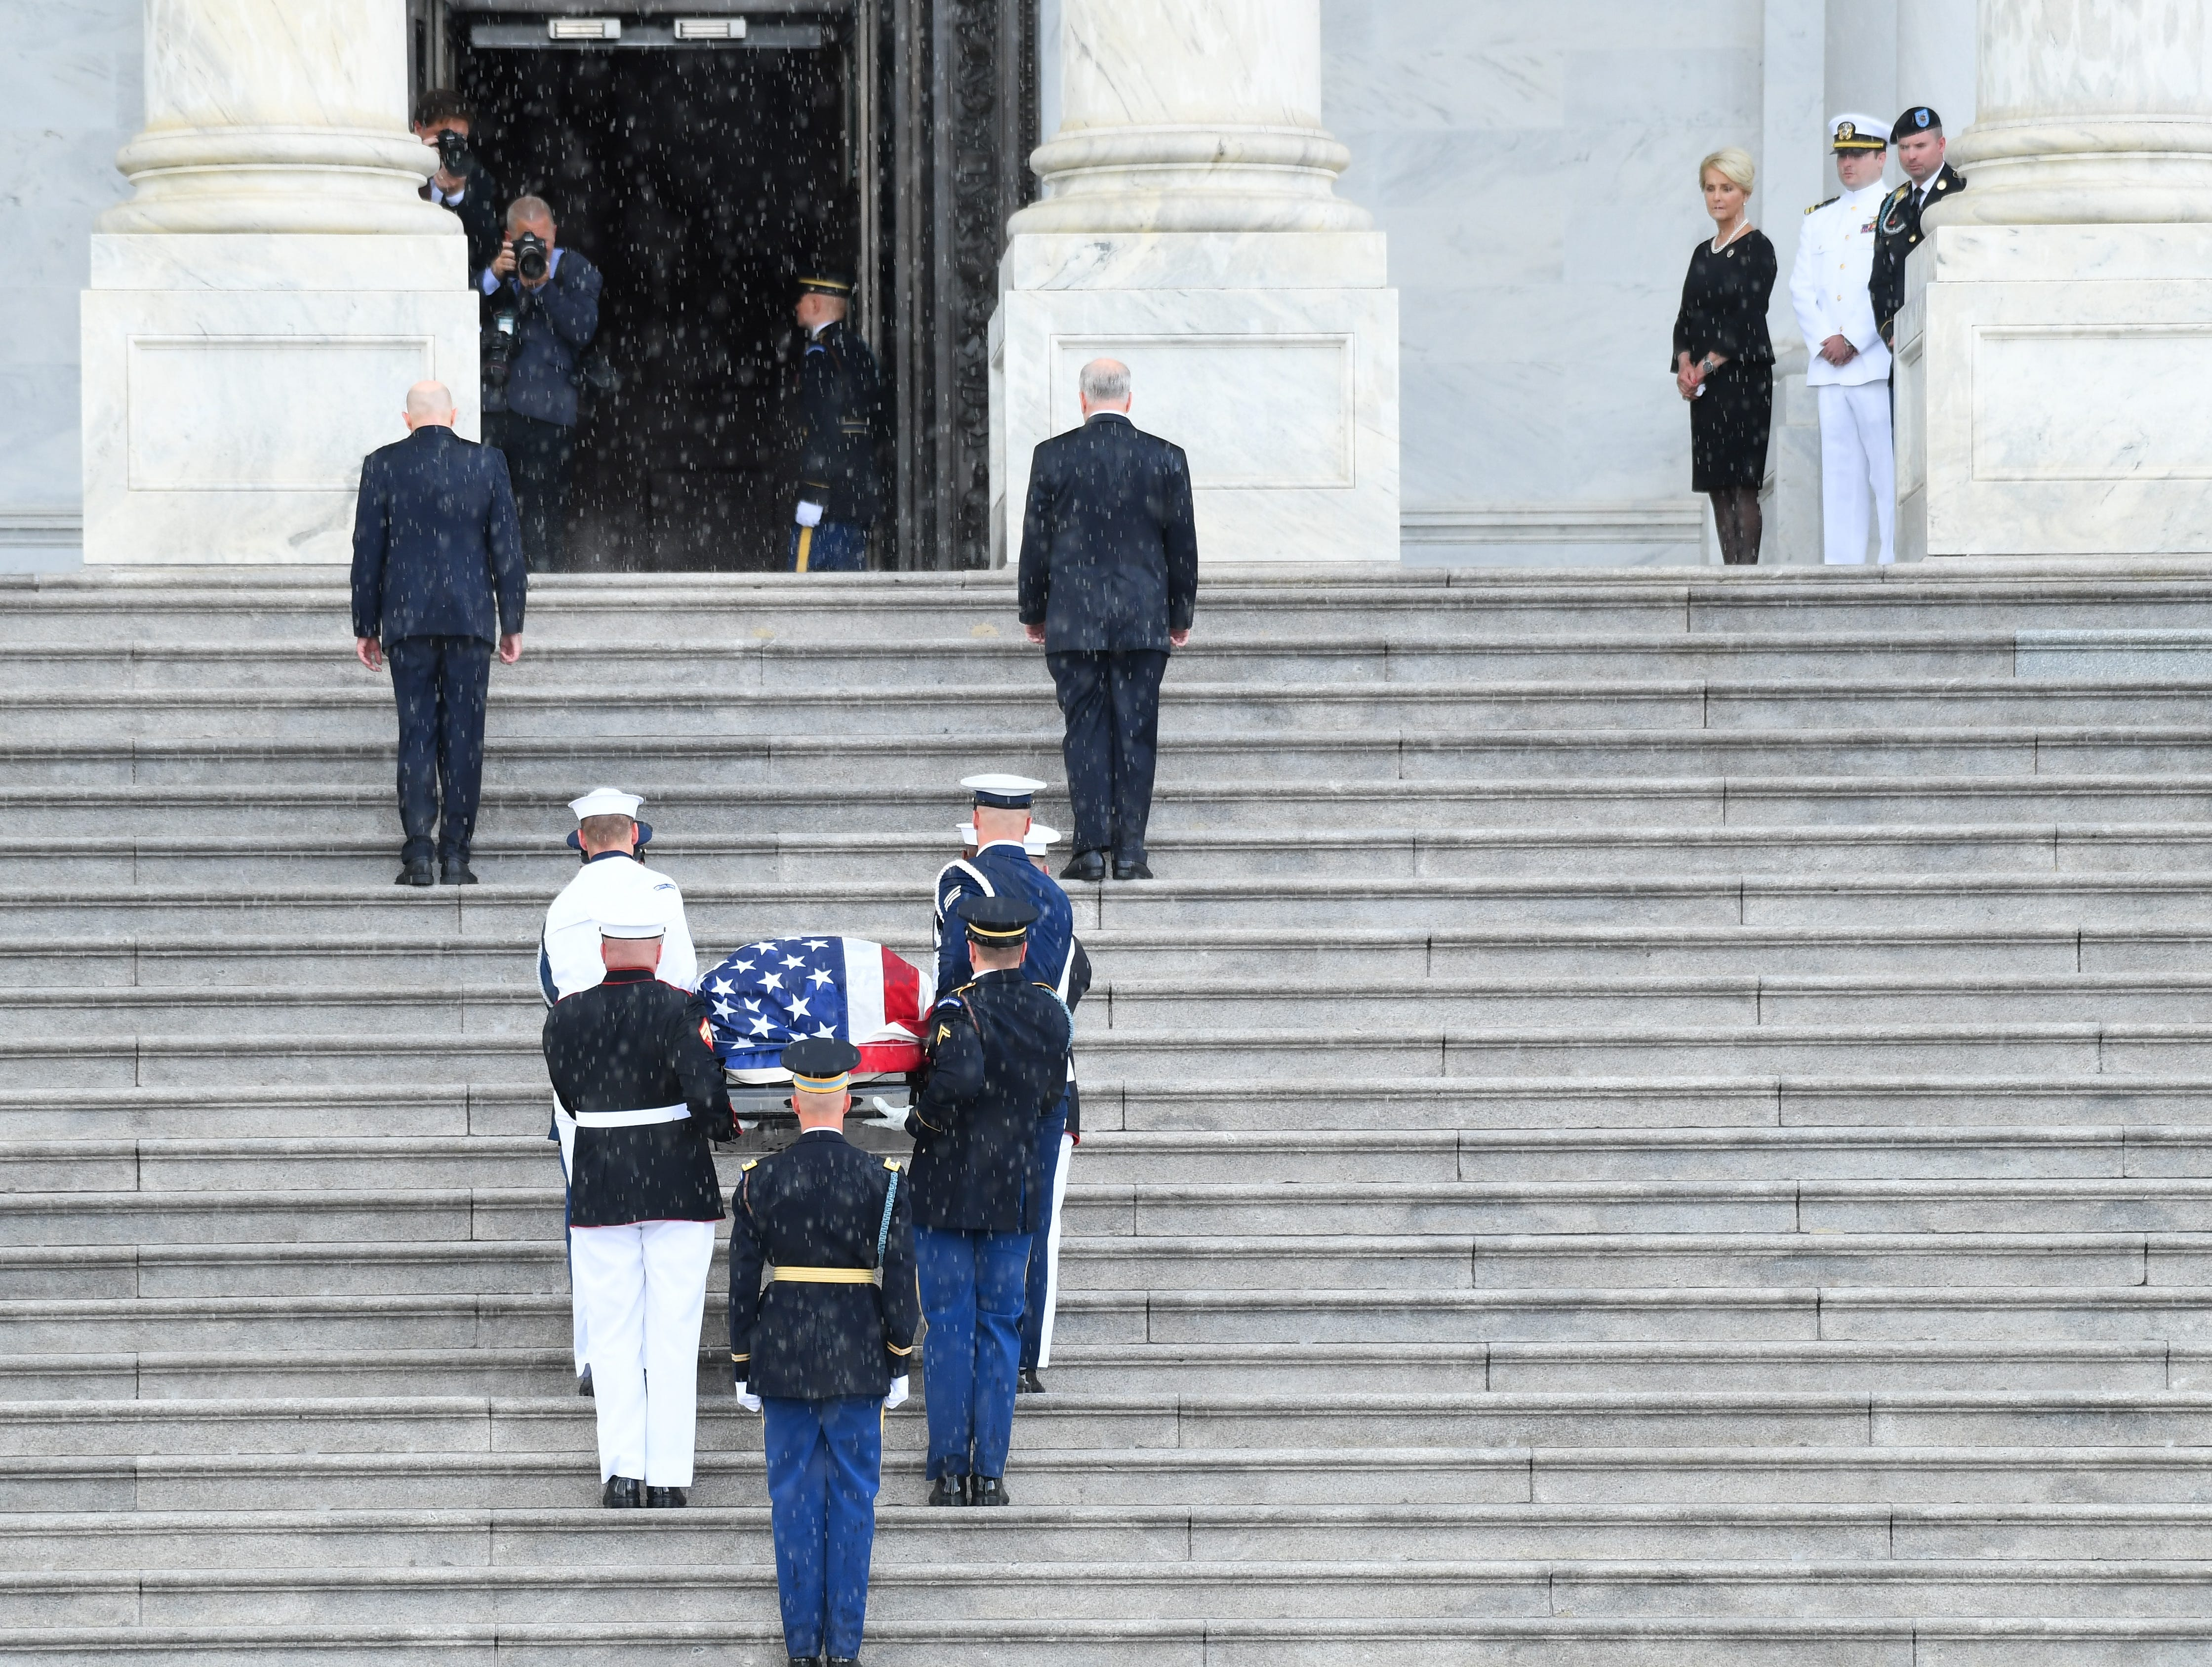 The casket of Sen. John McCain arrives at the U.S. Capitol while his wife, Cindy McCain, along with their two sons Jack and Jimmy McCain, look on at the U.S. Capital in Washington on Aug. 31, 2018.